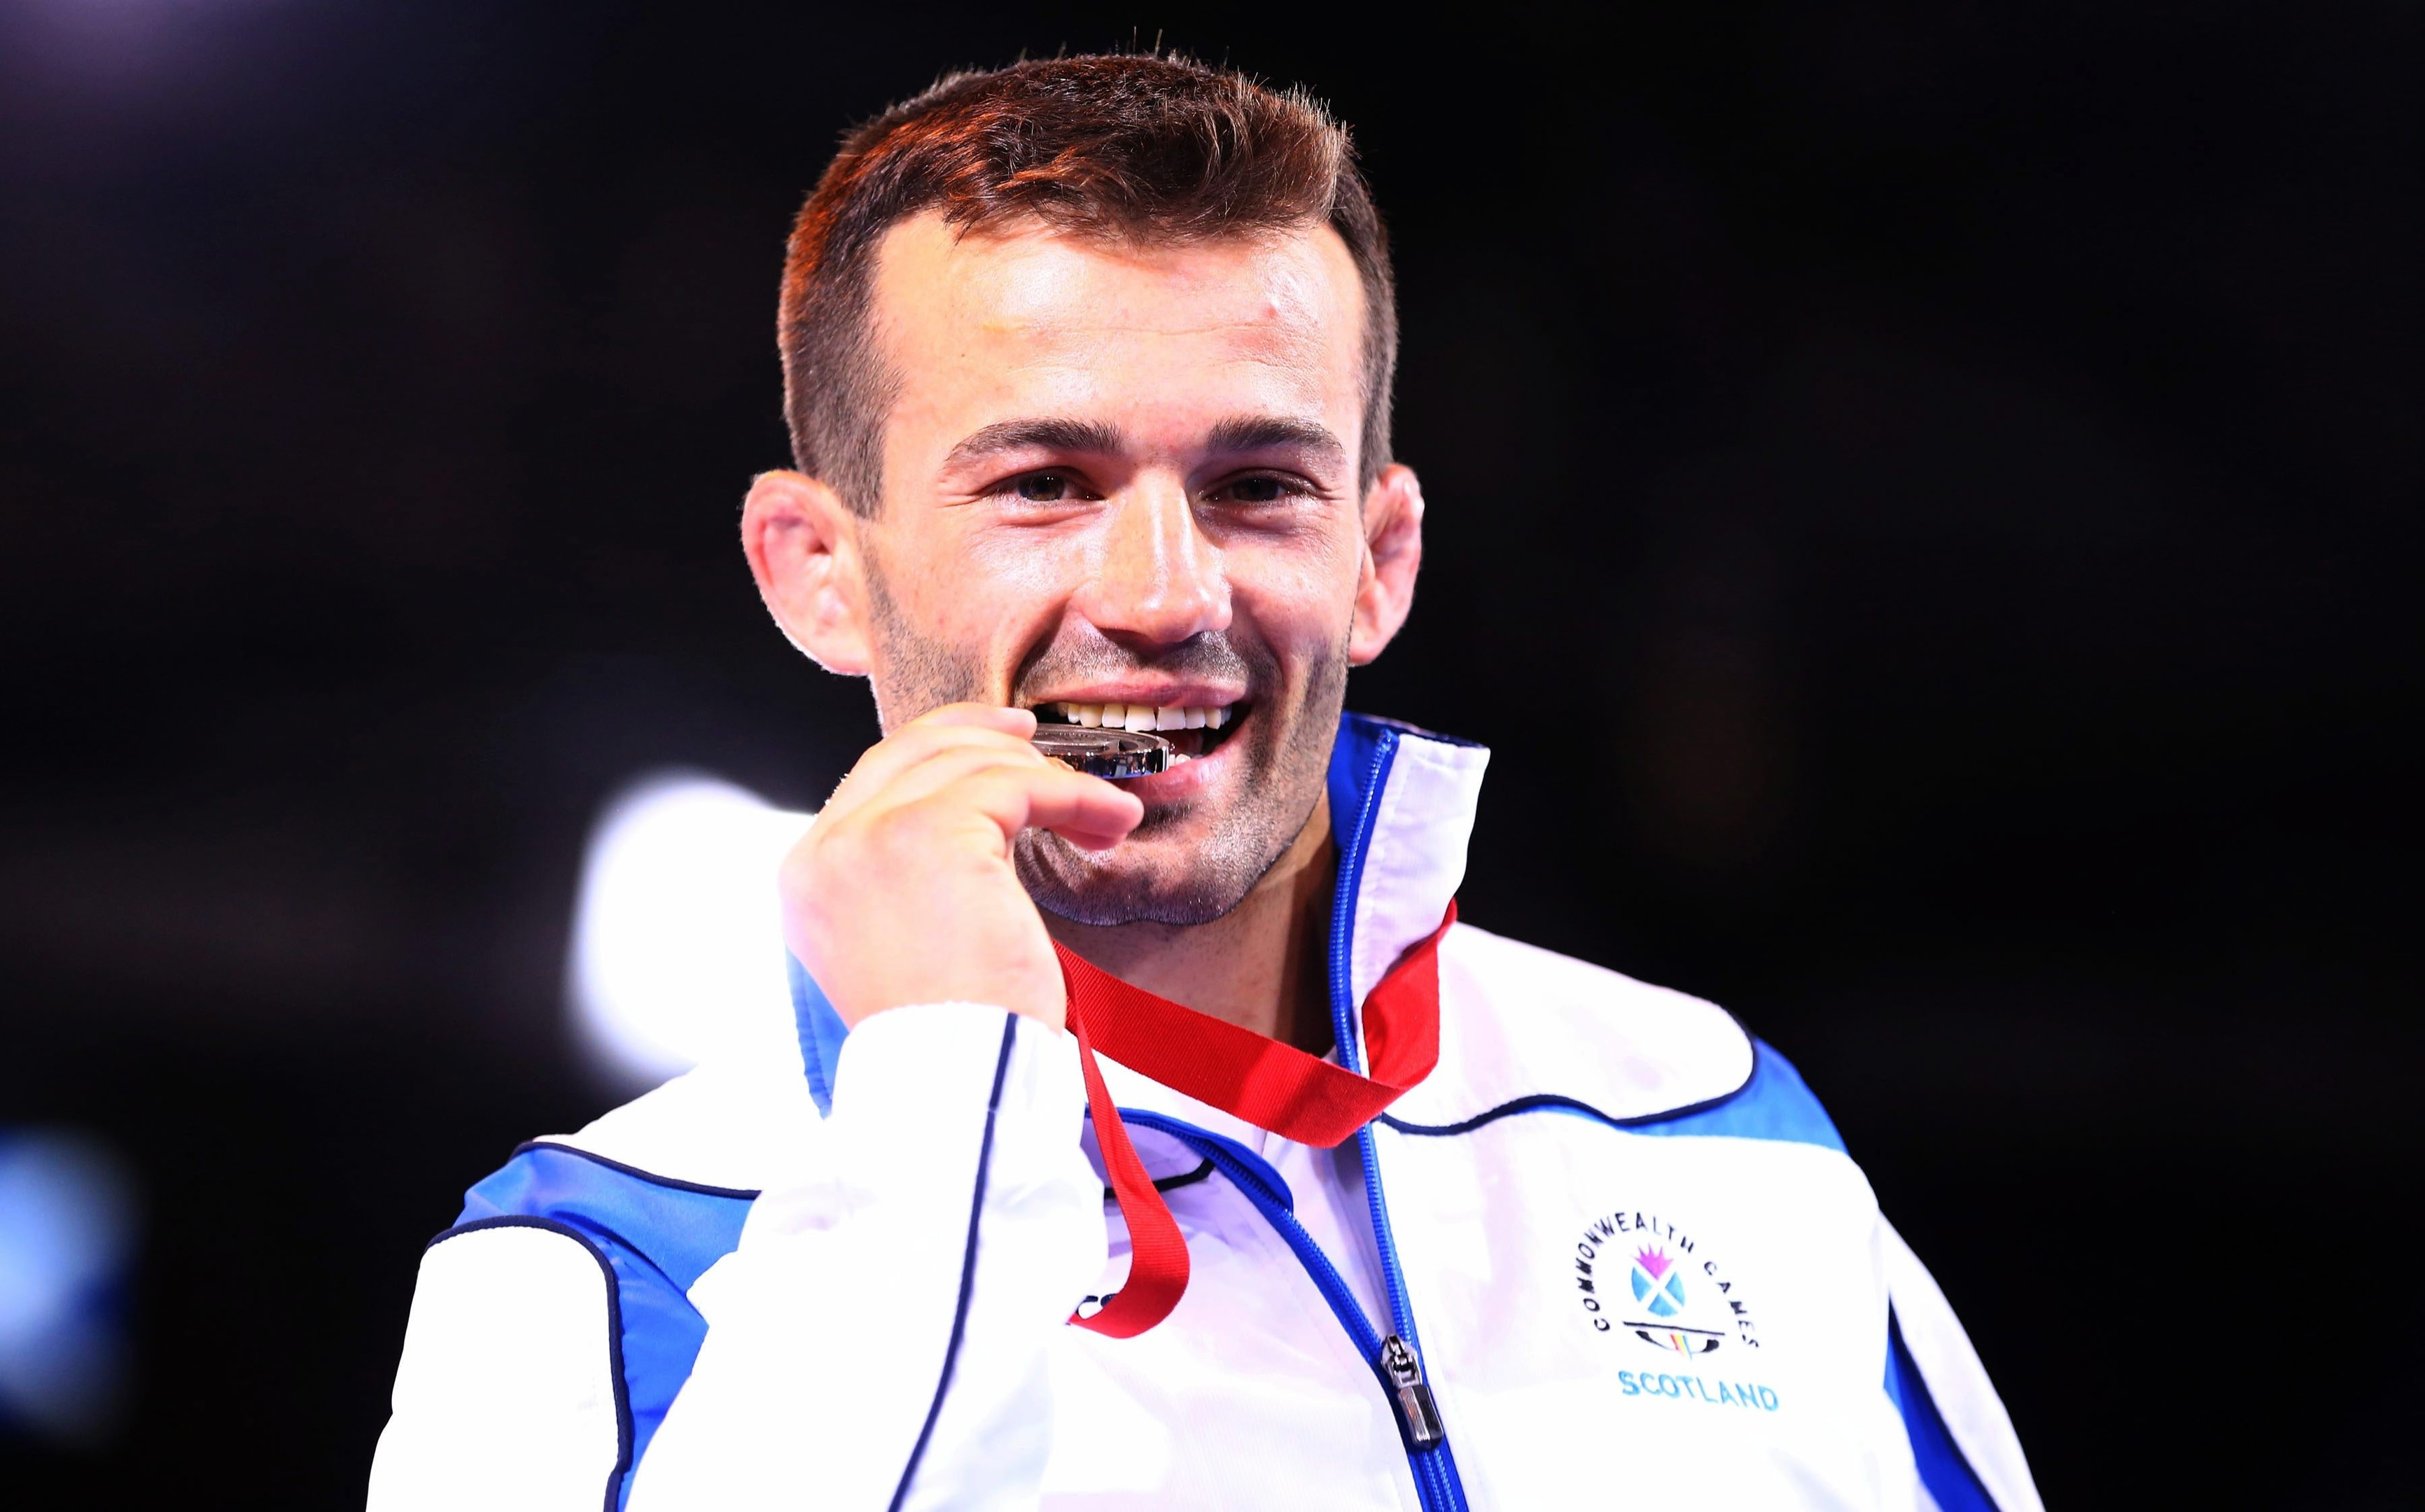 Viorel Etko with his bronze medal won at Glasgow 2014.